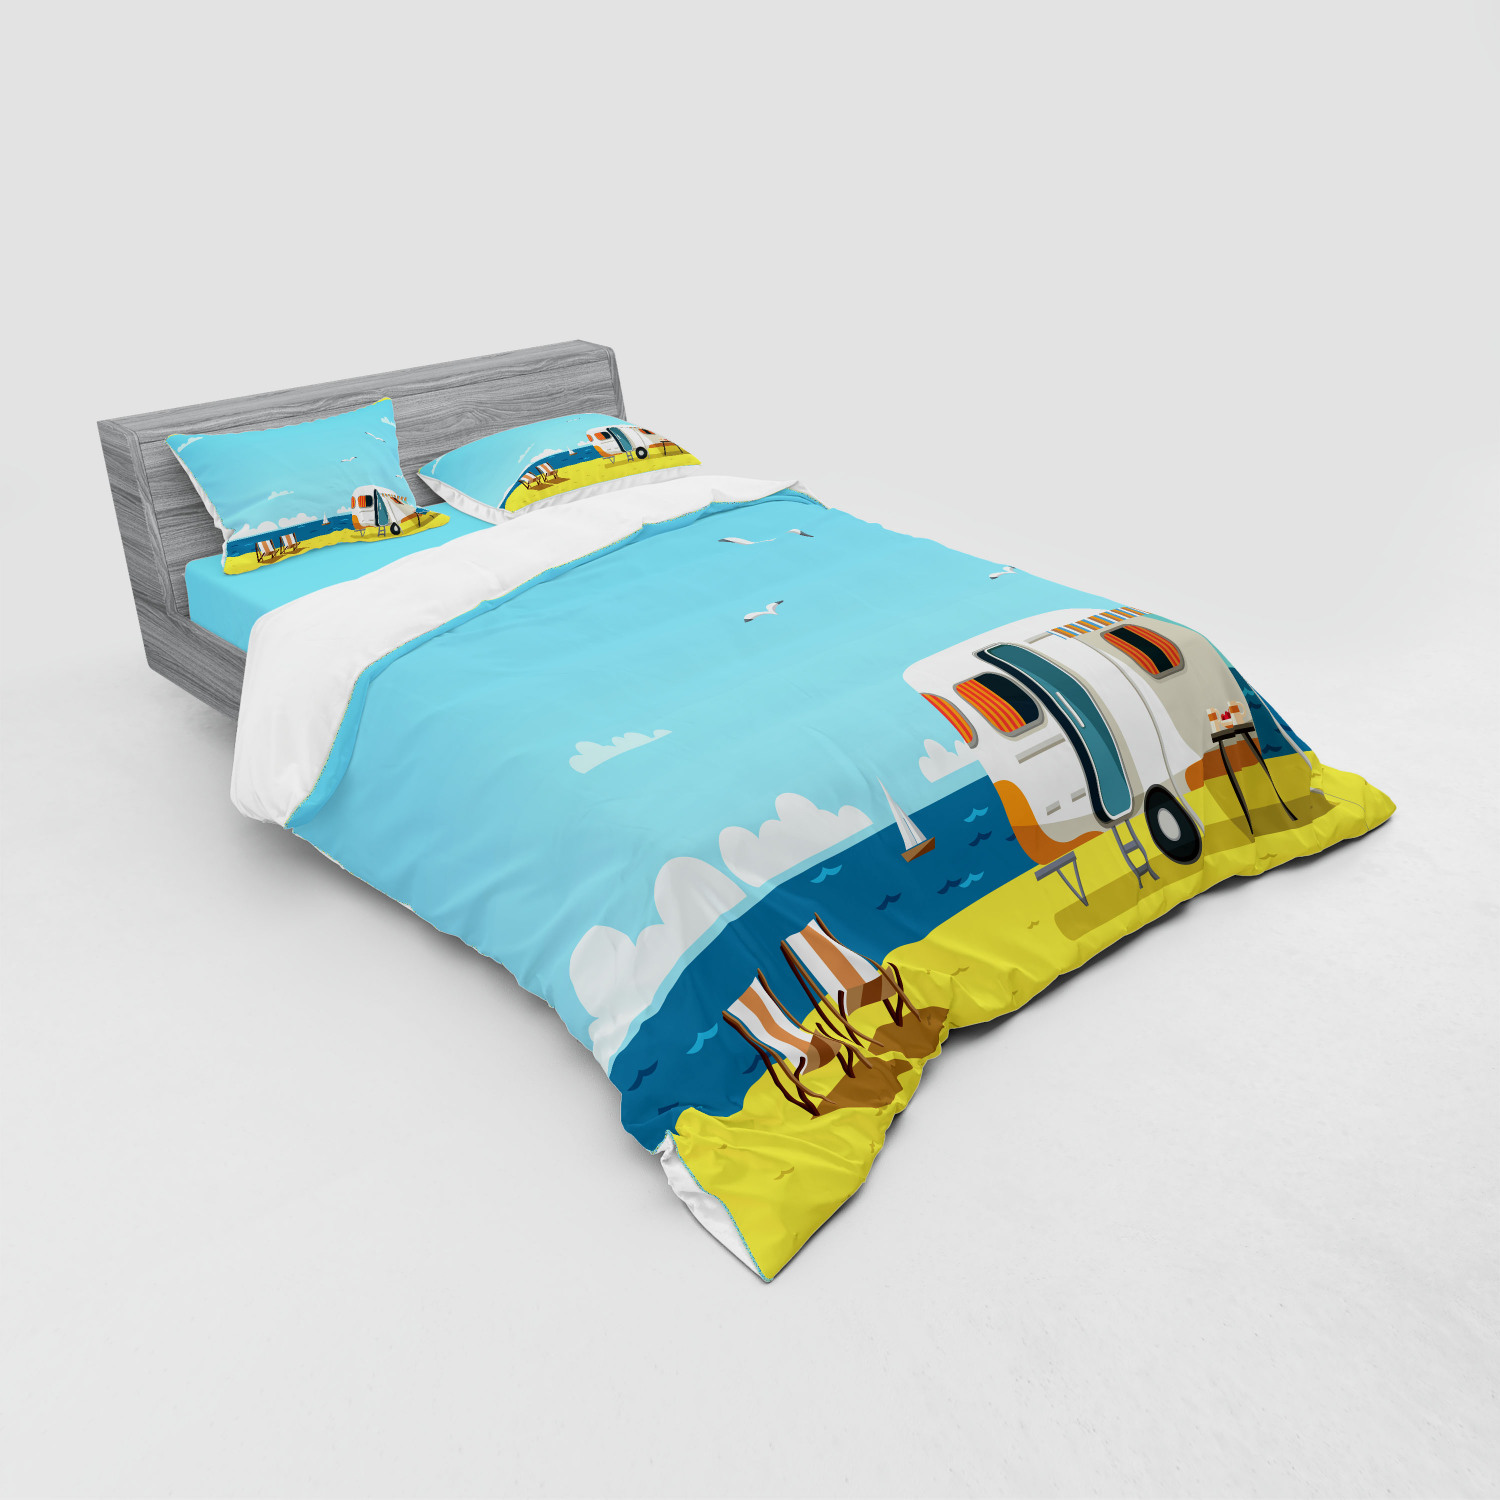 thumbnail 47 - Ambesonne Summer Bedding Set Duvet Cover Sham Fitted Sheet in 3 Sizes